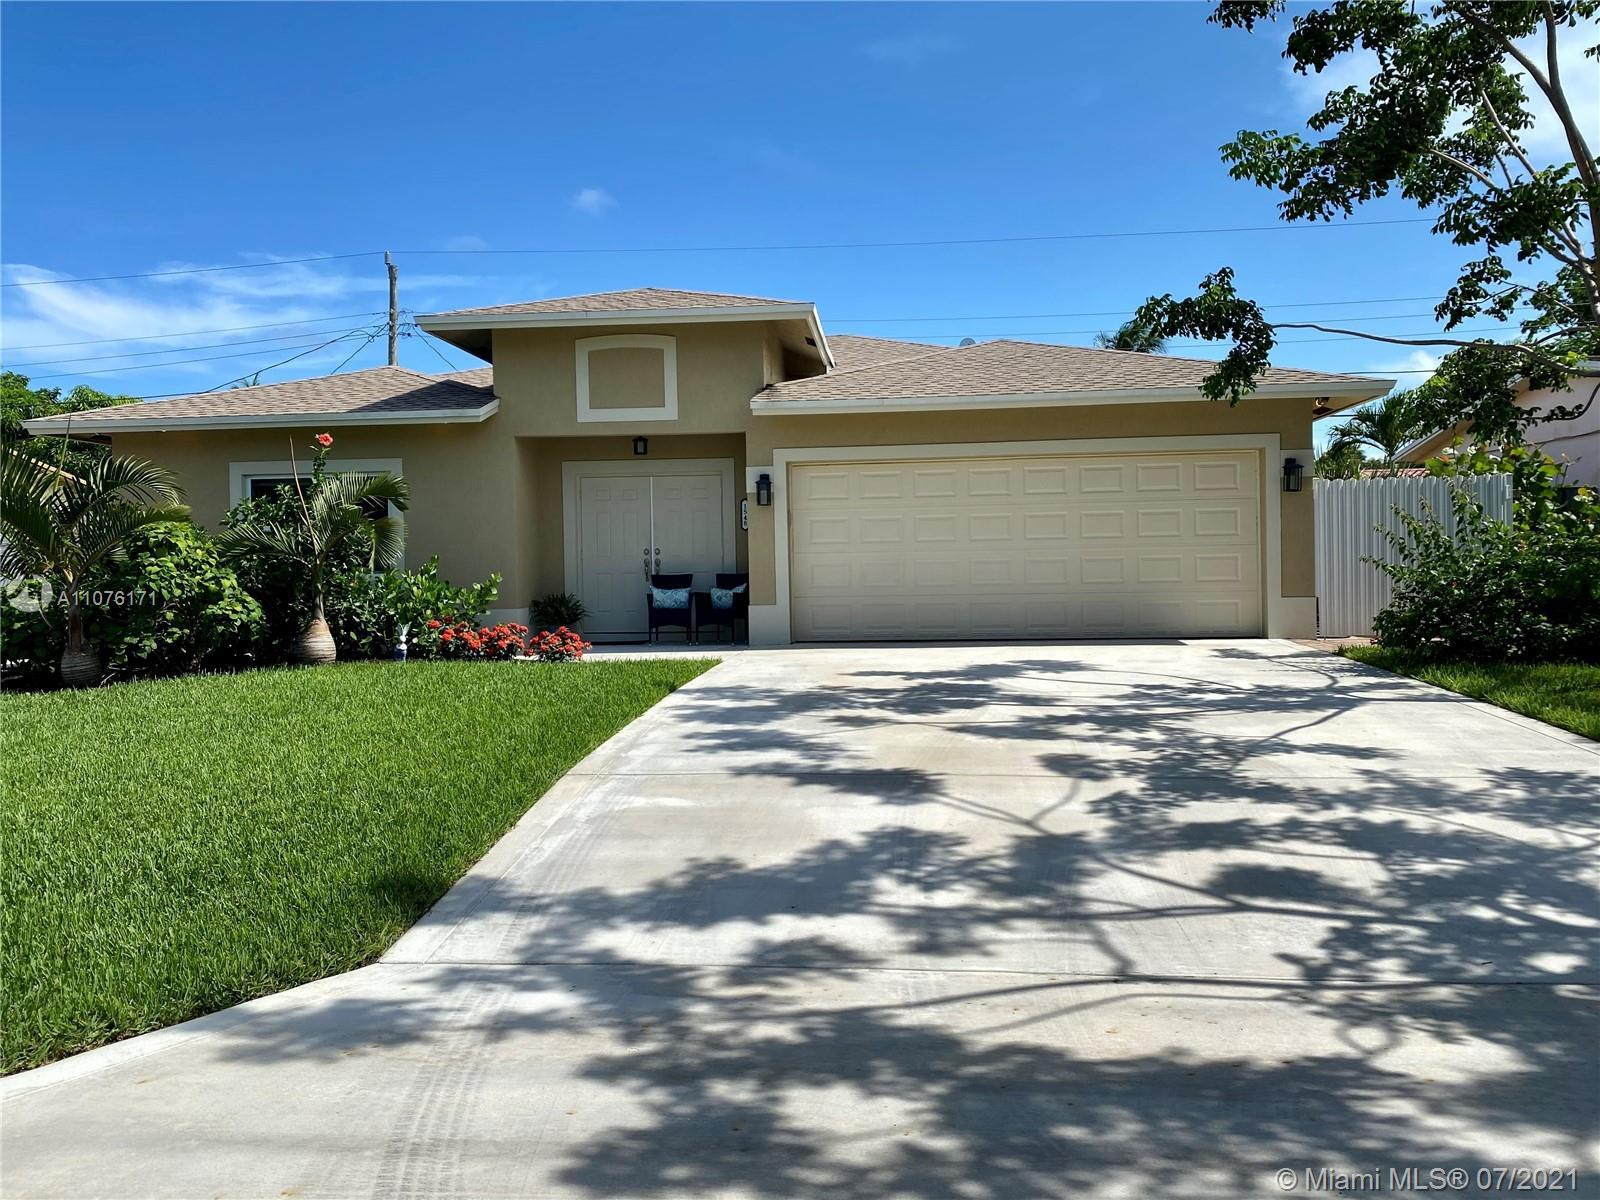 Built in 2018 this beautiful home offers 3 bedrooms, 2 bathrooms & a large 2 car garage & a split fl